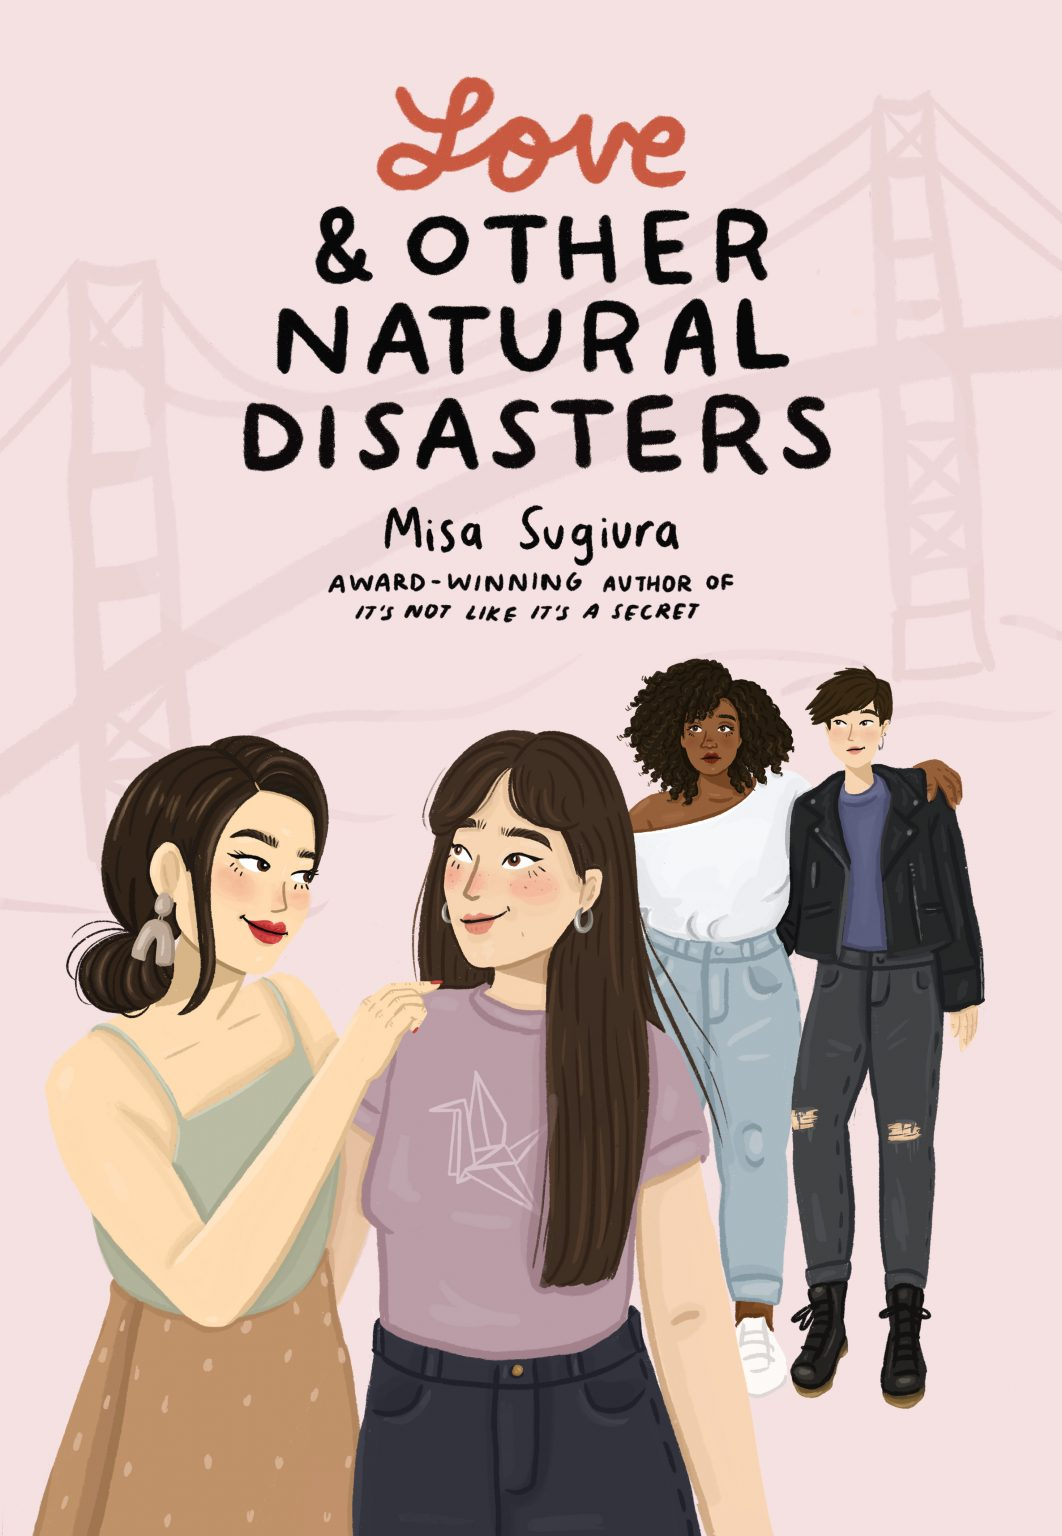 2021 book releases: Love and Other Natural Disasters by Misa Sugiura